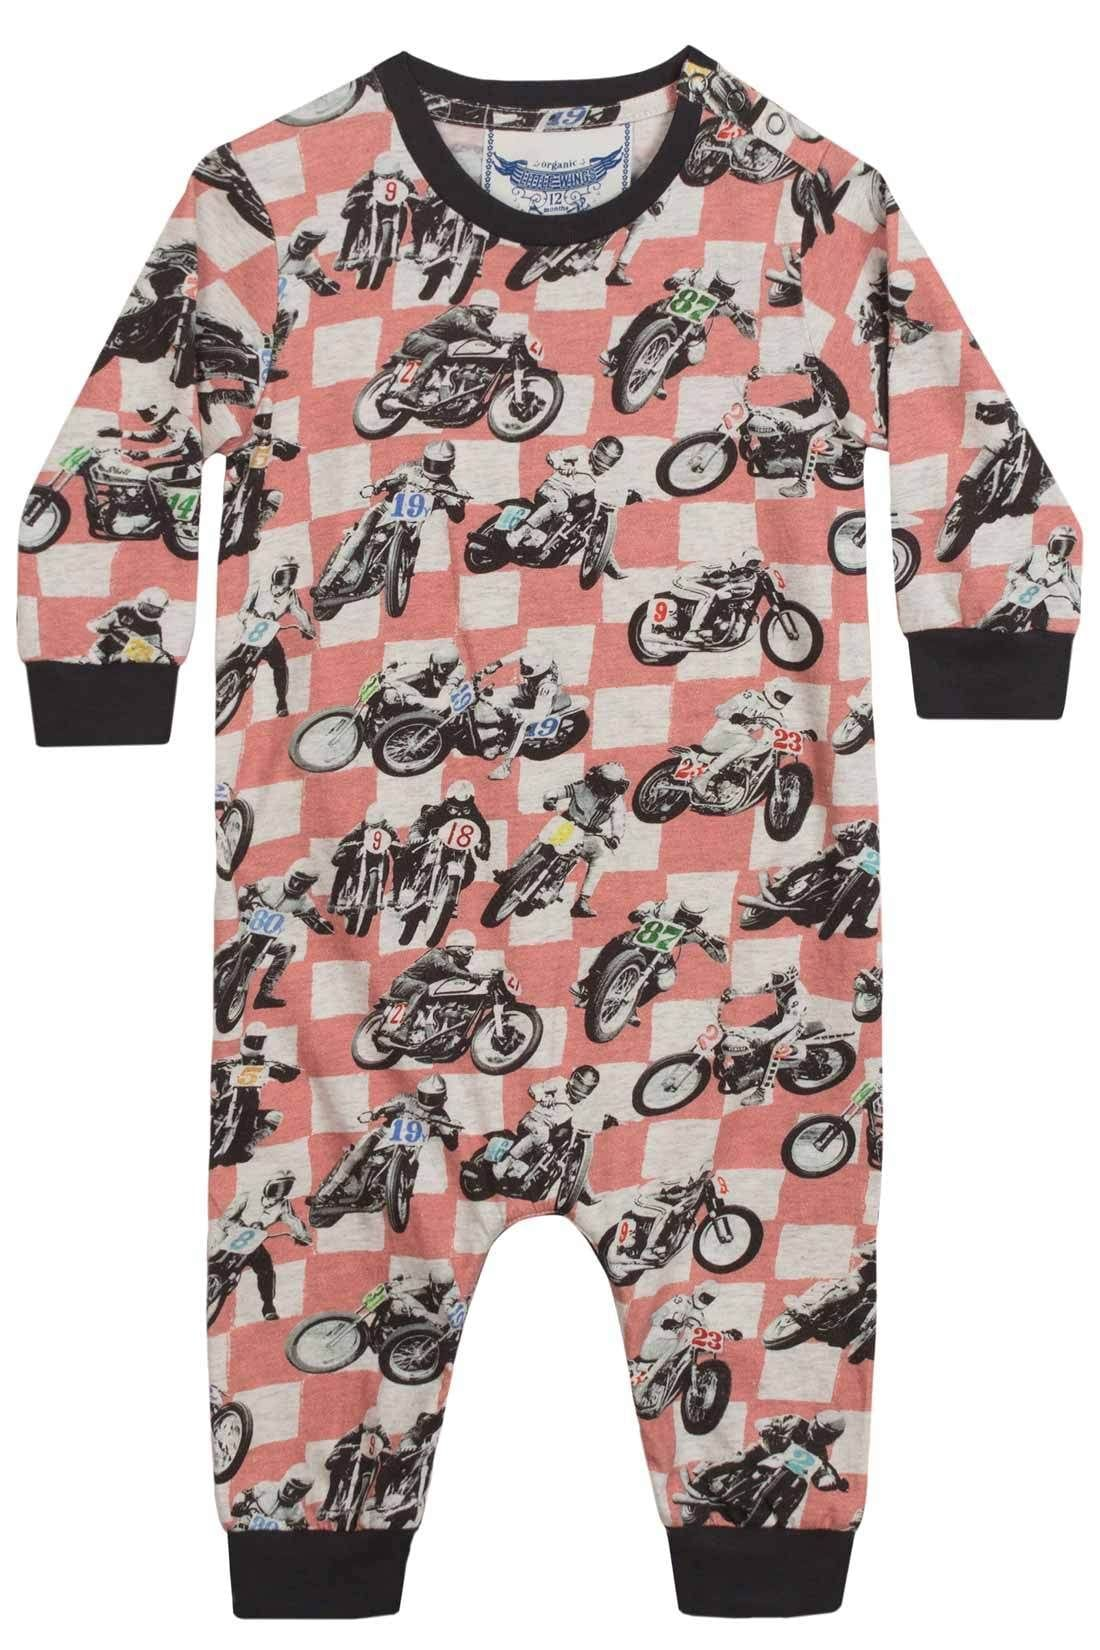 Little Wings by Paper Wings - Relaxed Fit Romper - Motorbike Check